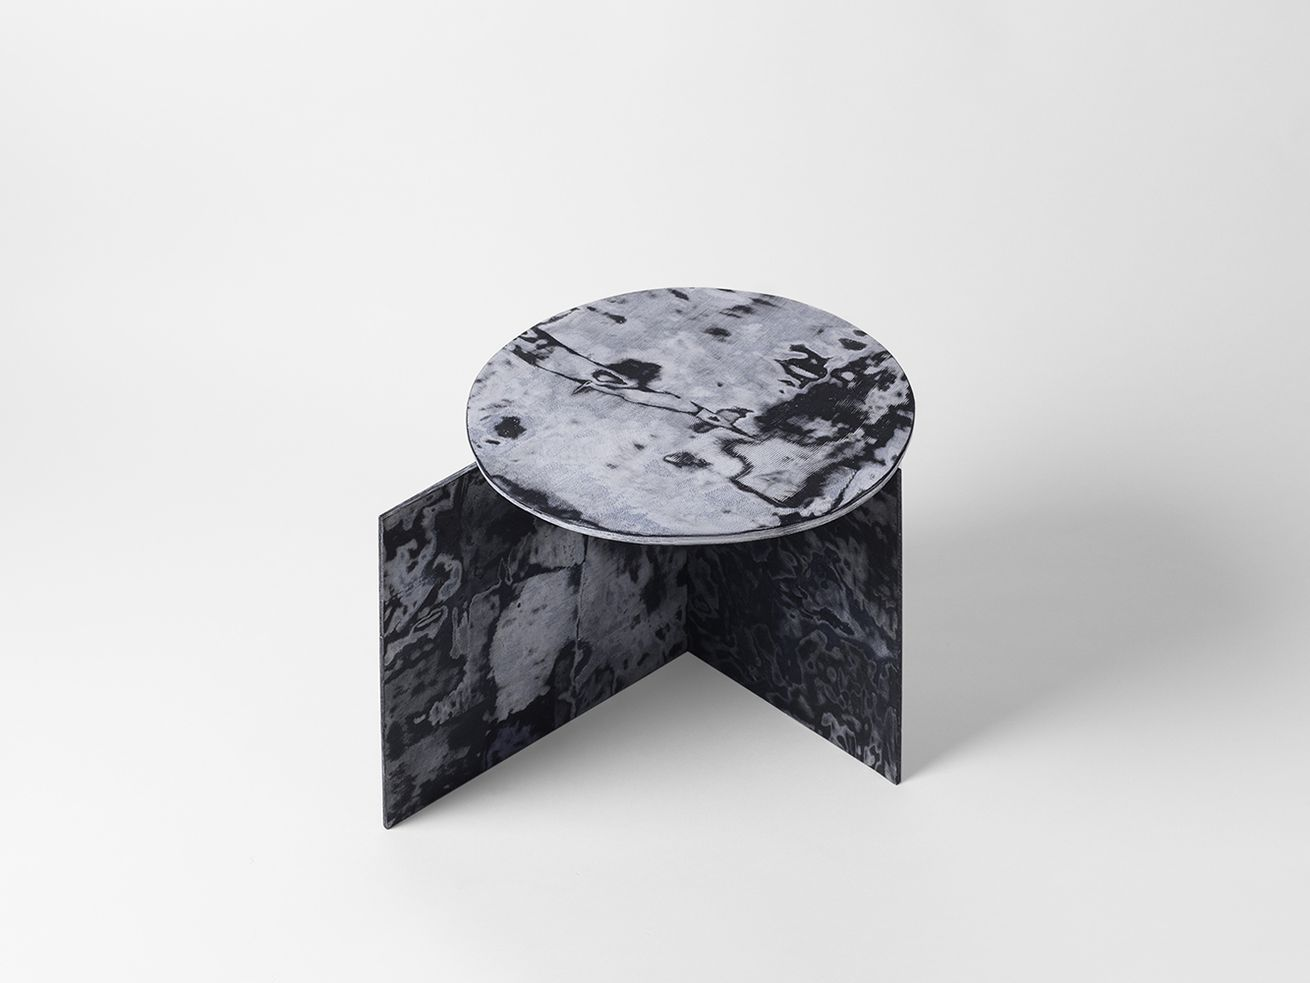 These marble-like tables are made from recycled jeans